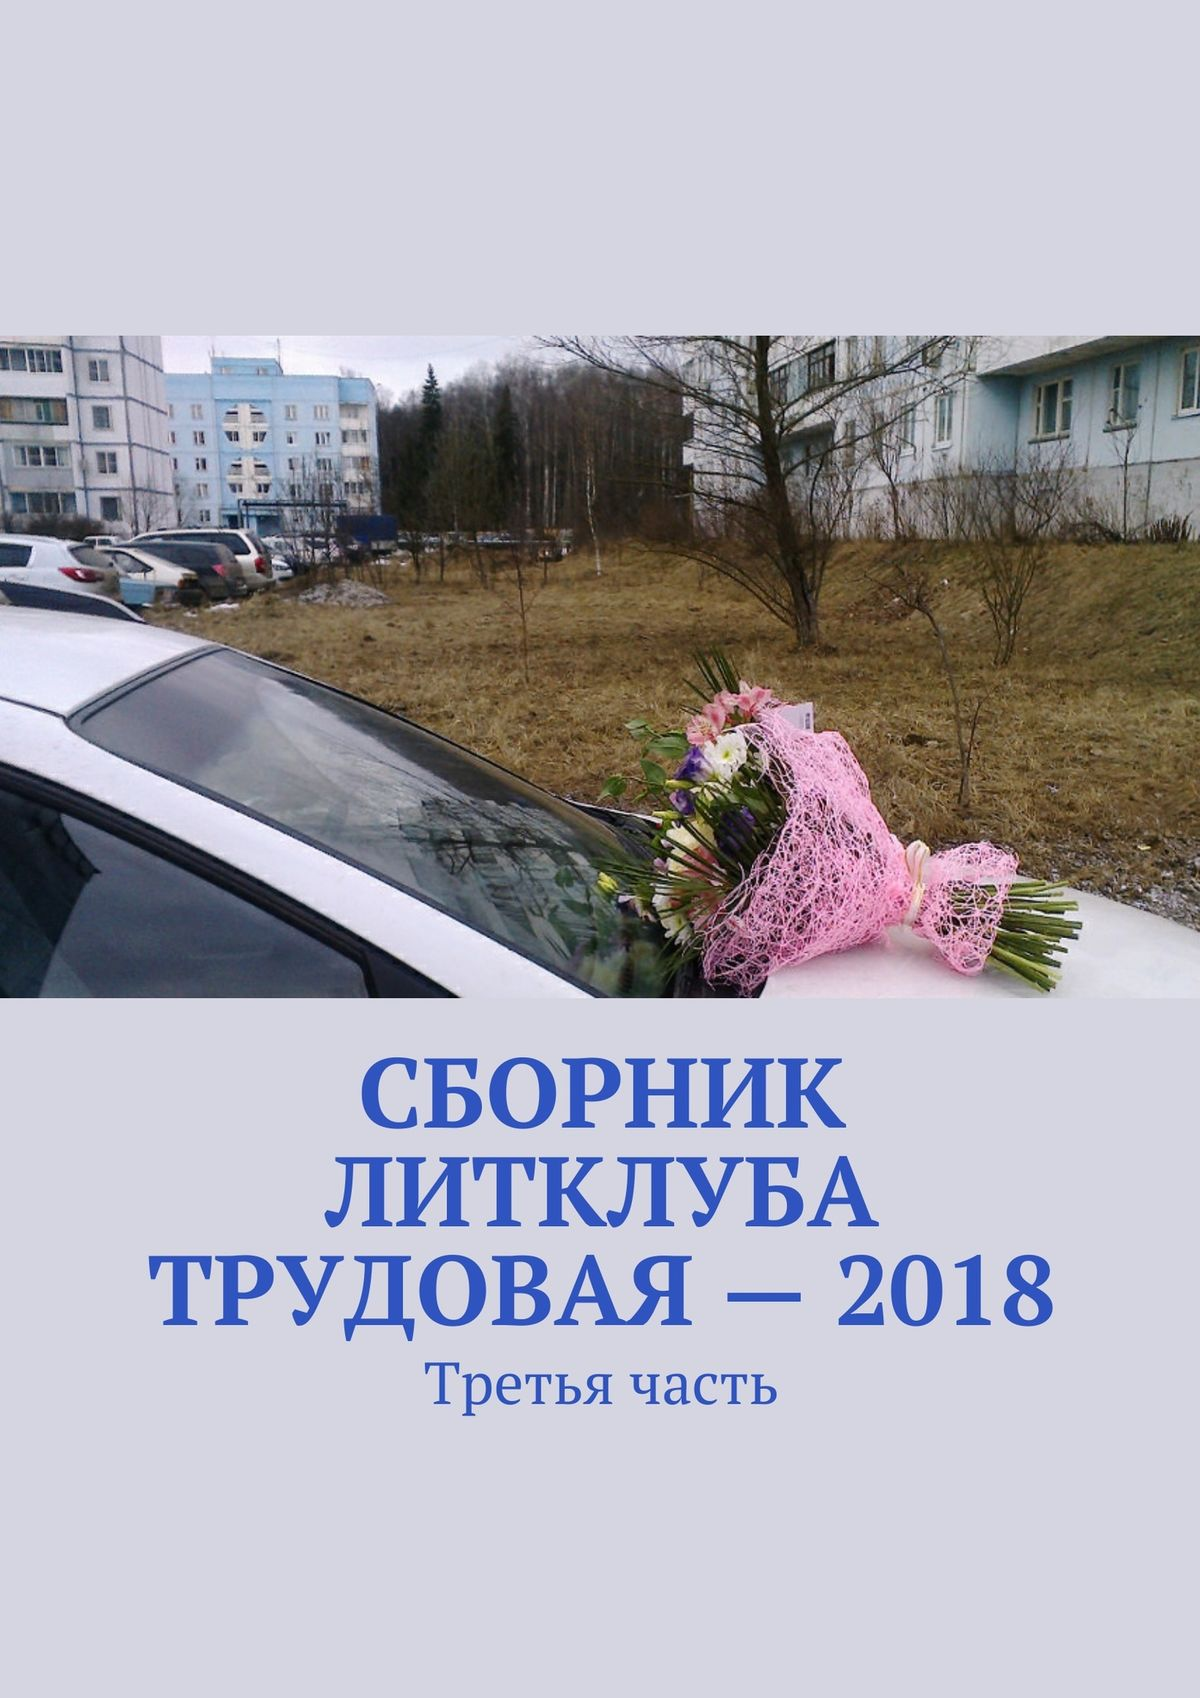 Владимир Борисович Броудо Сборник Литклуба Трудовая – 2018. Третья часть павел плунский владимир антонов вячеслав зенкин ильдар бедретдинов николай гордюков su 27 fighter beginning of story part 1